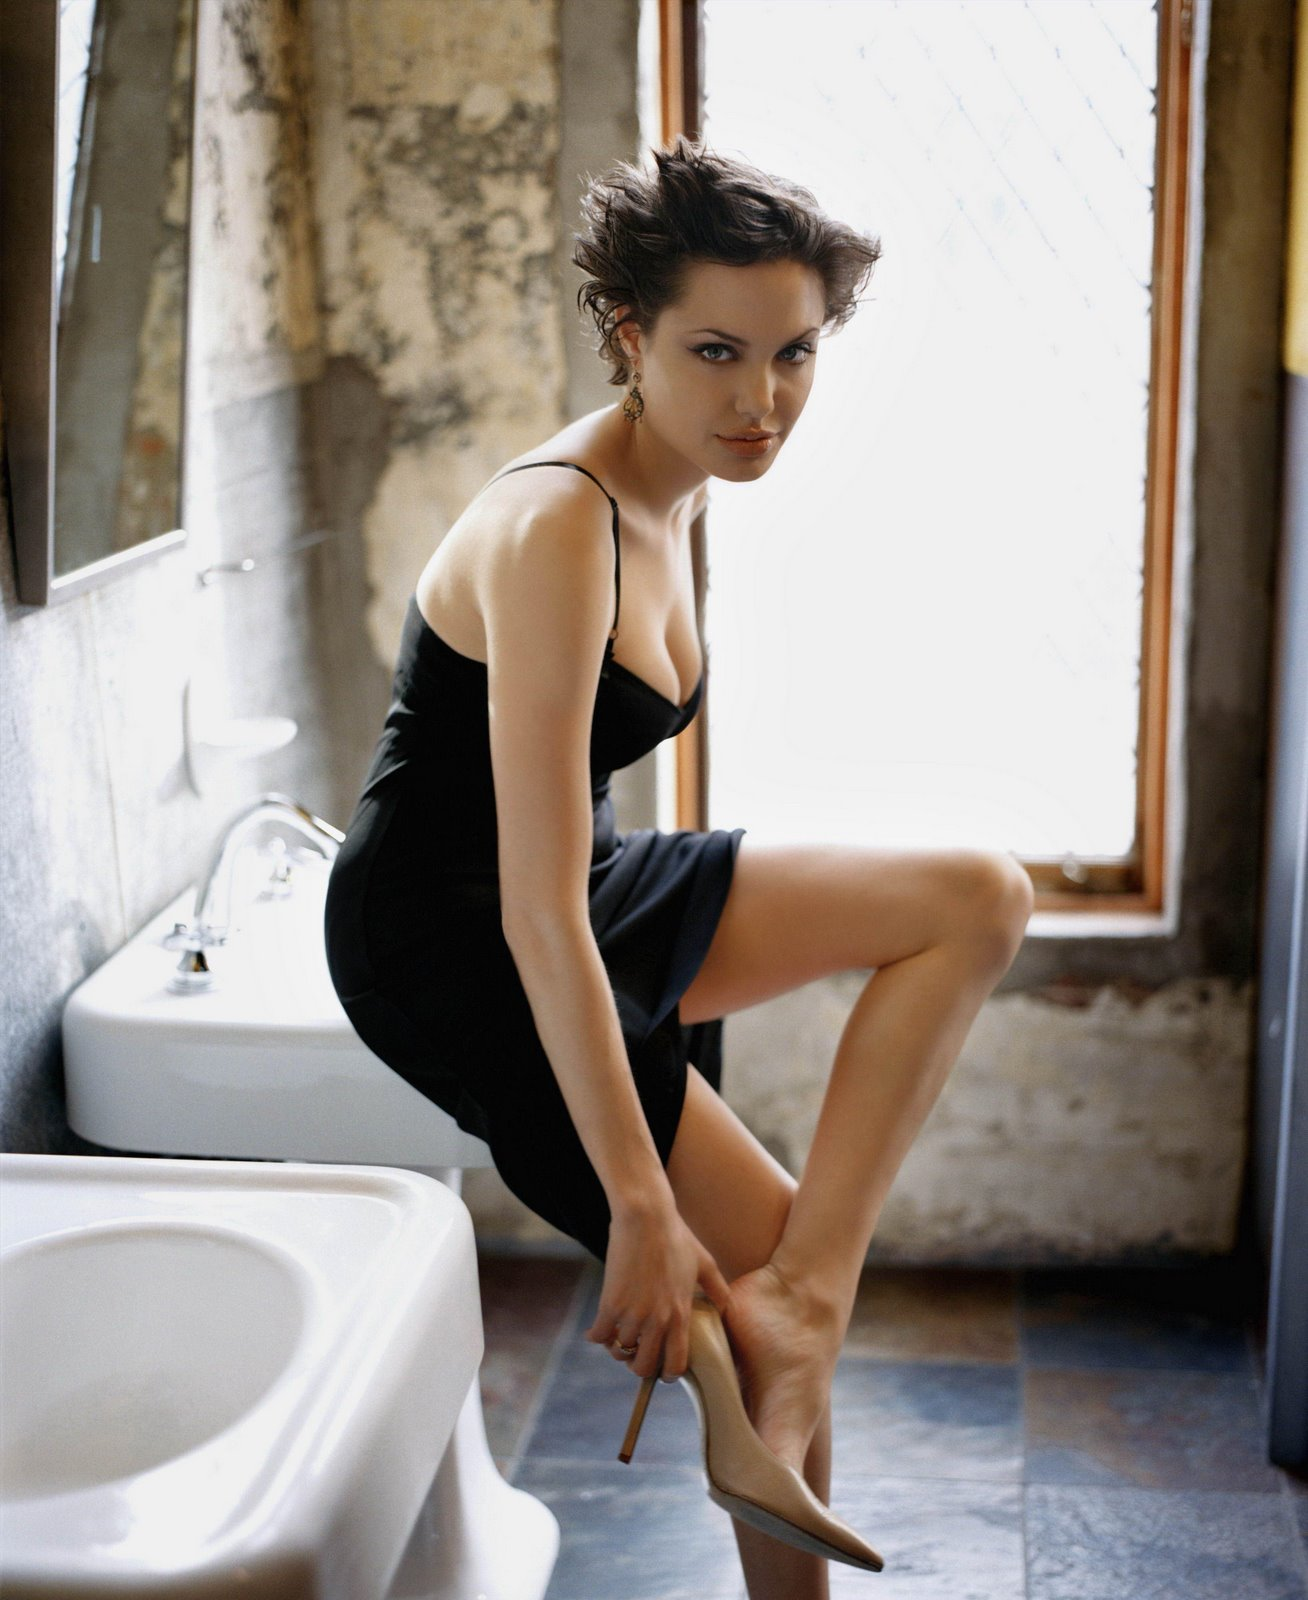 http://2.bp.blogspot.com/-Rulx1HJowsU/TrqOmNrBbeI/AAAAAAAADKc/J6Vv75HMhMQ/s1600/angelina+jolie+short+hair-black-dress-bathroom.jpg